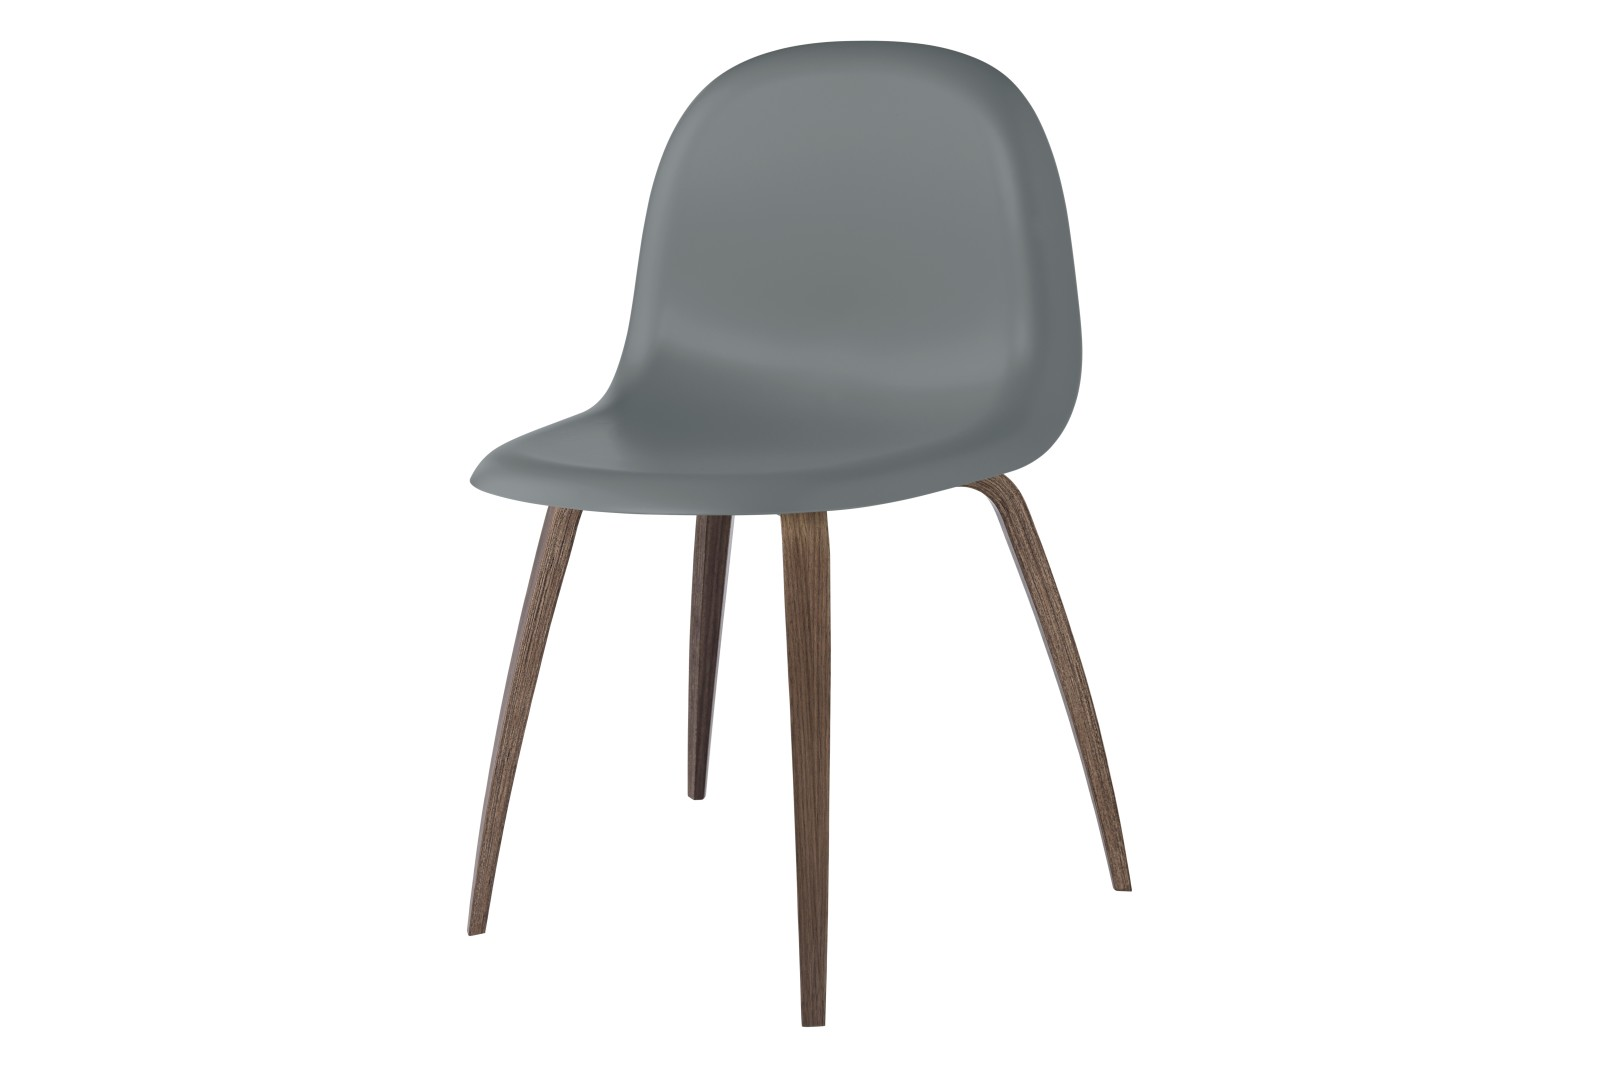 Gubi 3D Wood Base Dining Chair - Unupholstered Gubi HiRek Rainy Grey, Gubi Wood American Walnut